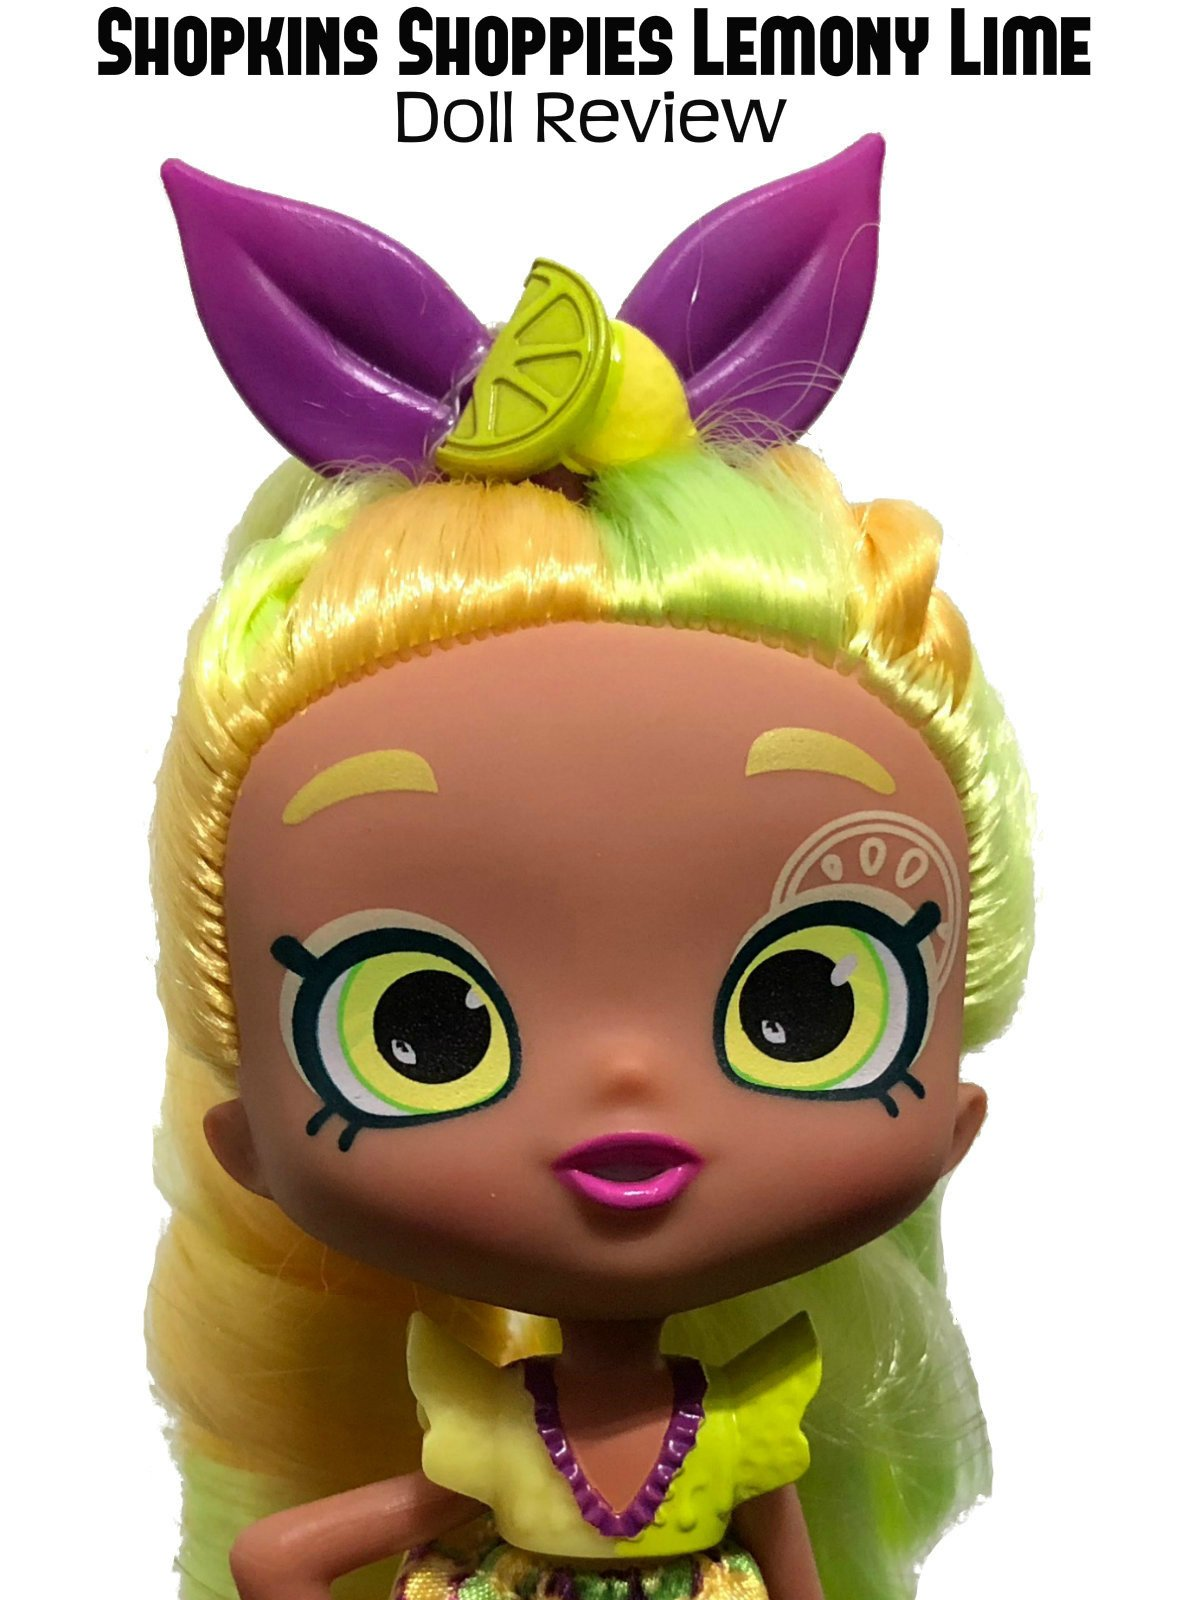 Review: Shopkins Shoppies Lemony Lime Doll Review